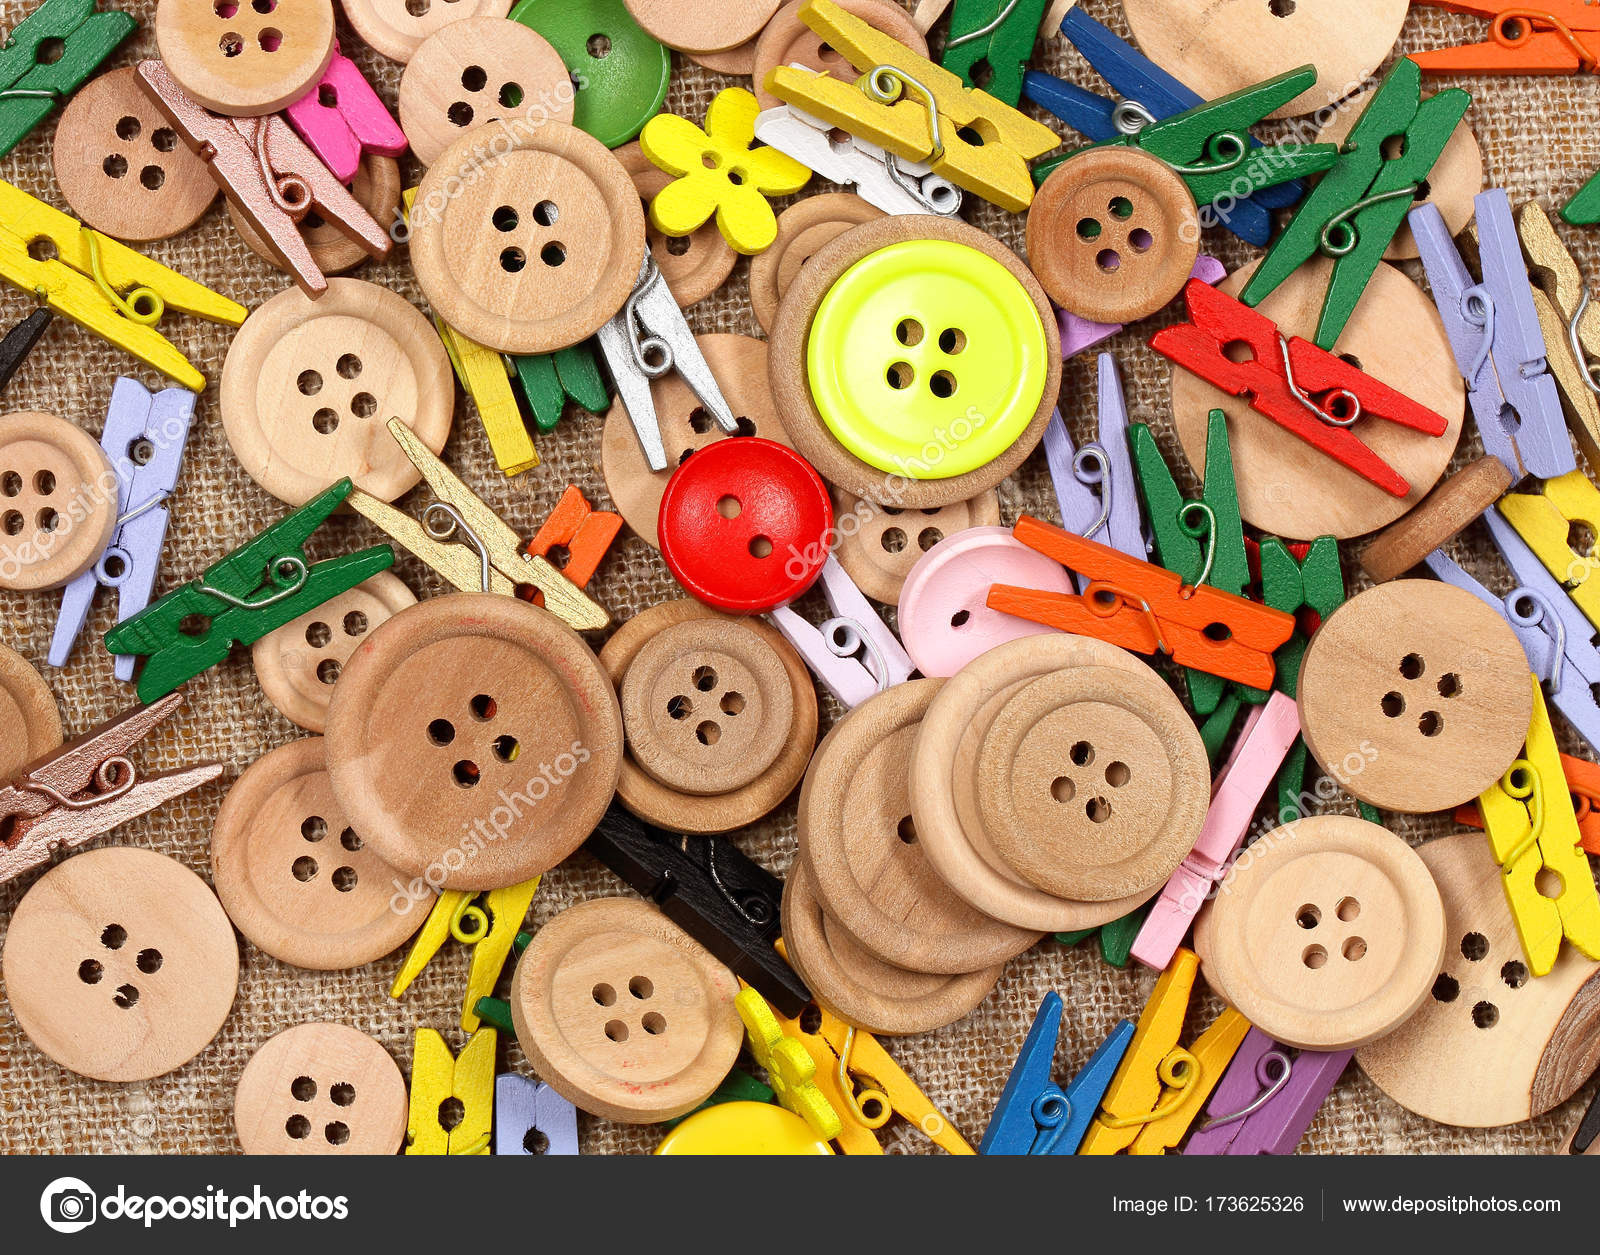 How to play with clothespins and buttons 16